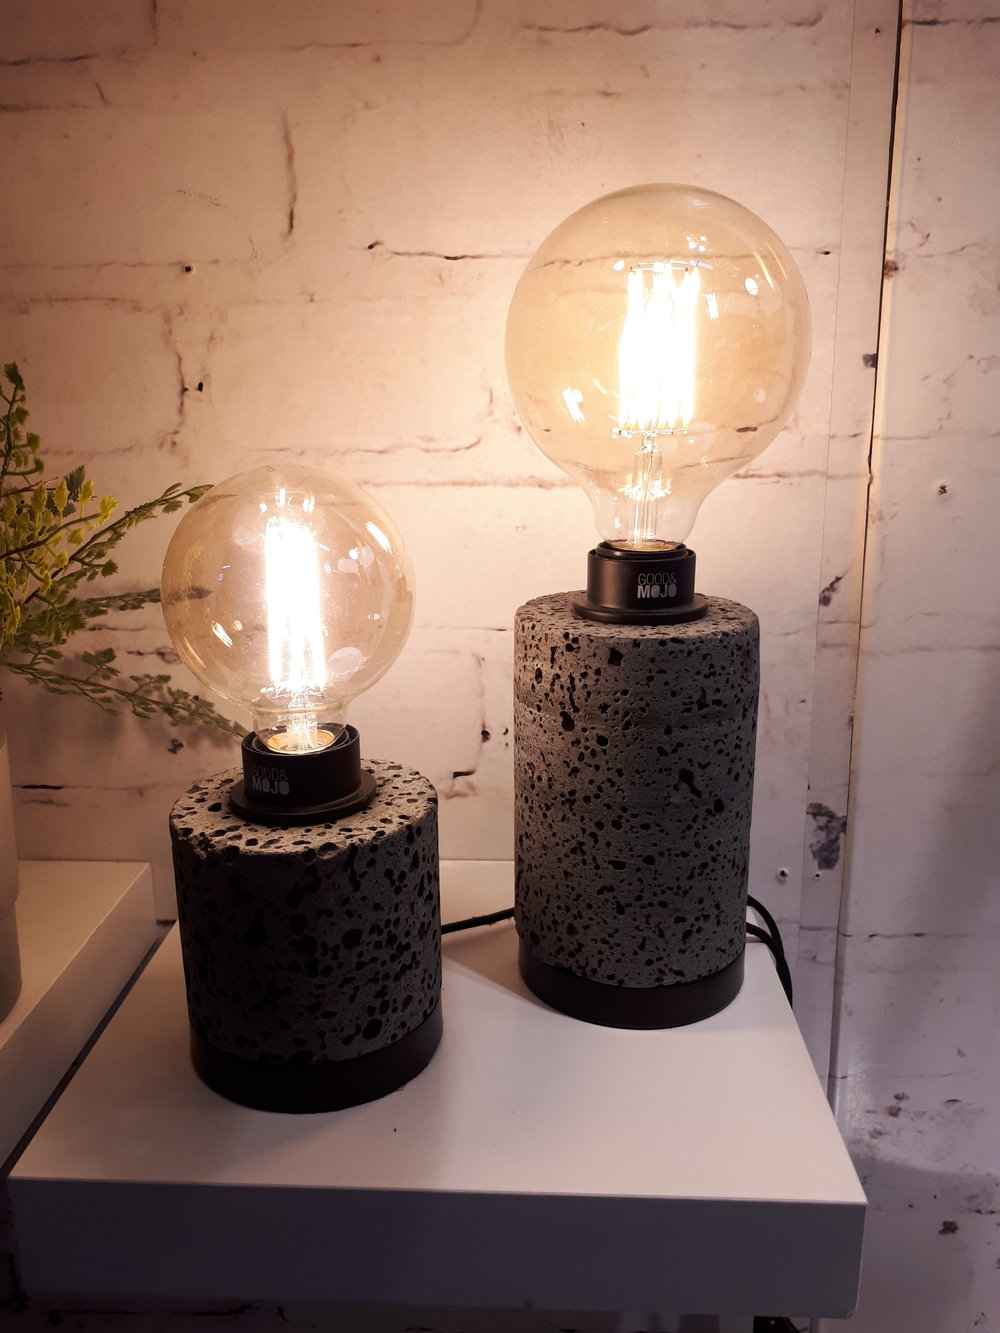 Lava stone table lamps! An example of amazing lighting options.